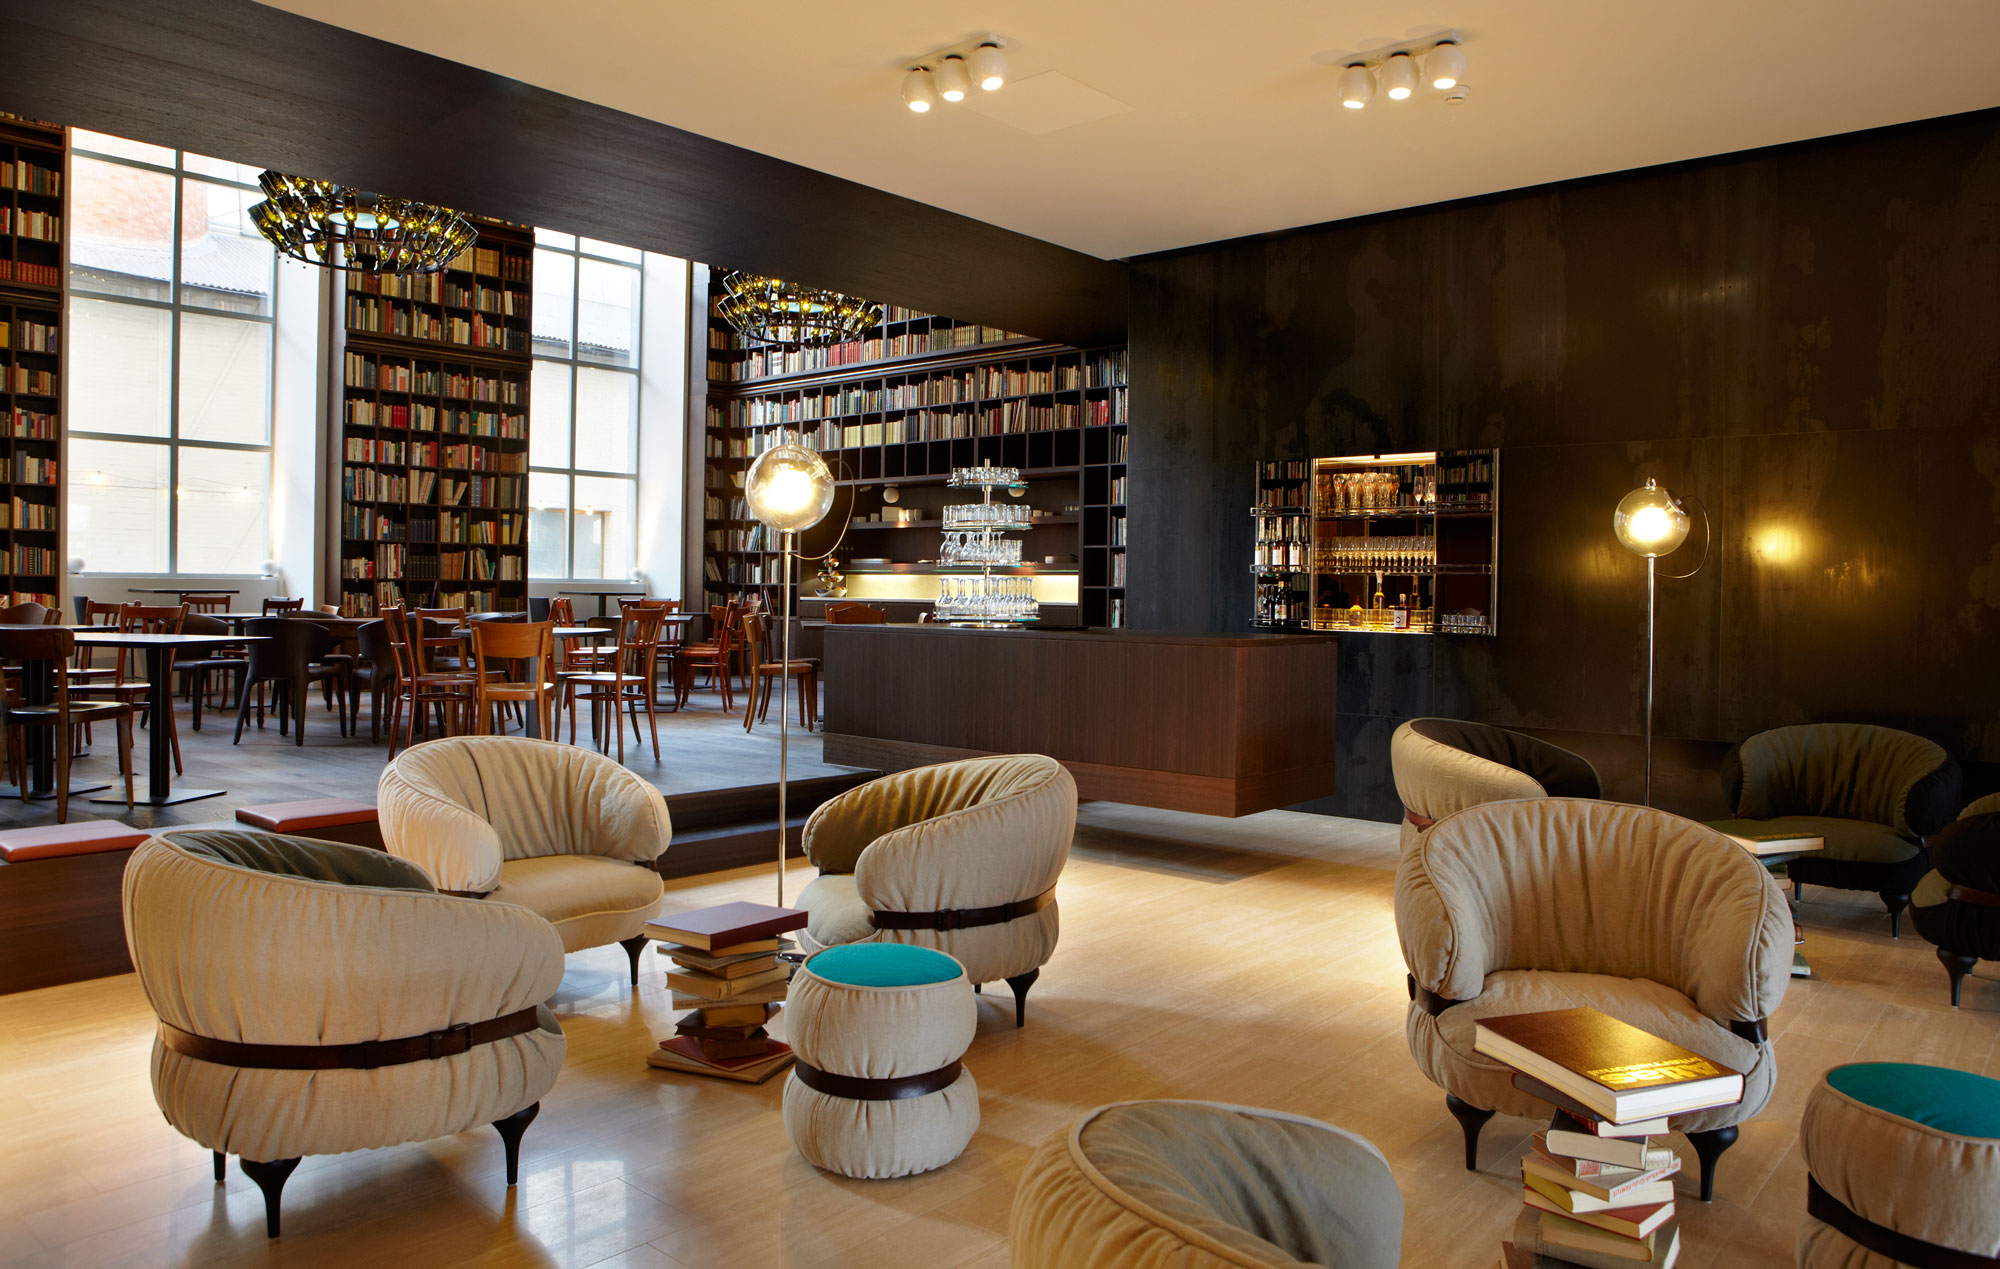 B2 boutique hotel by althammer hochuli architekten for Concept hotel boutique